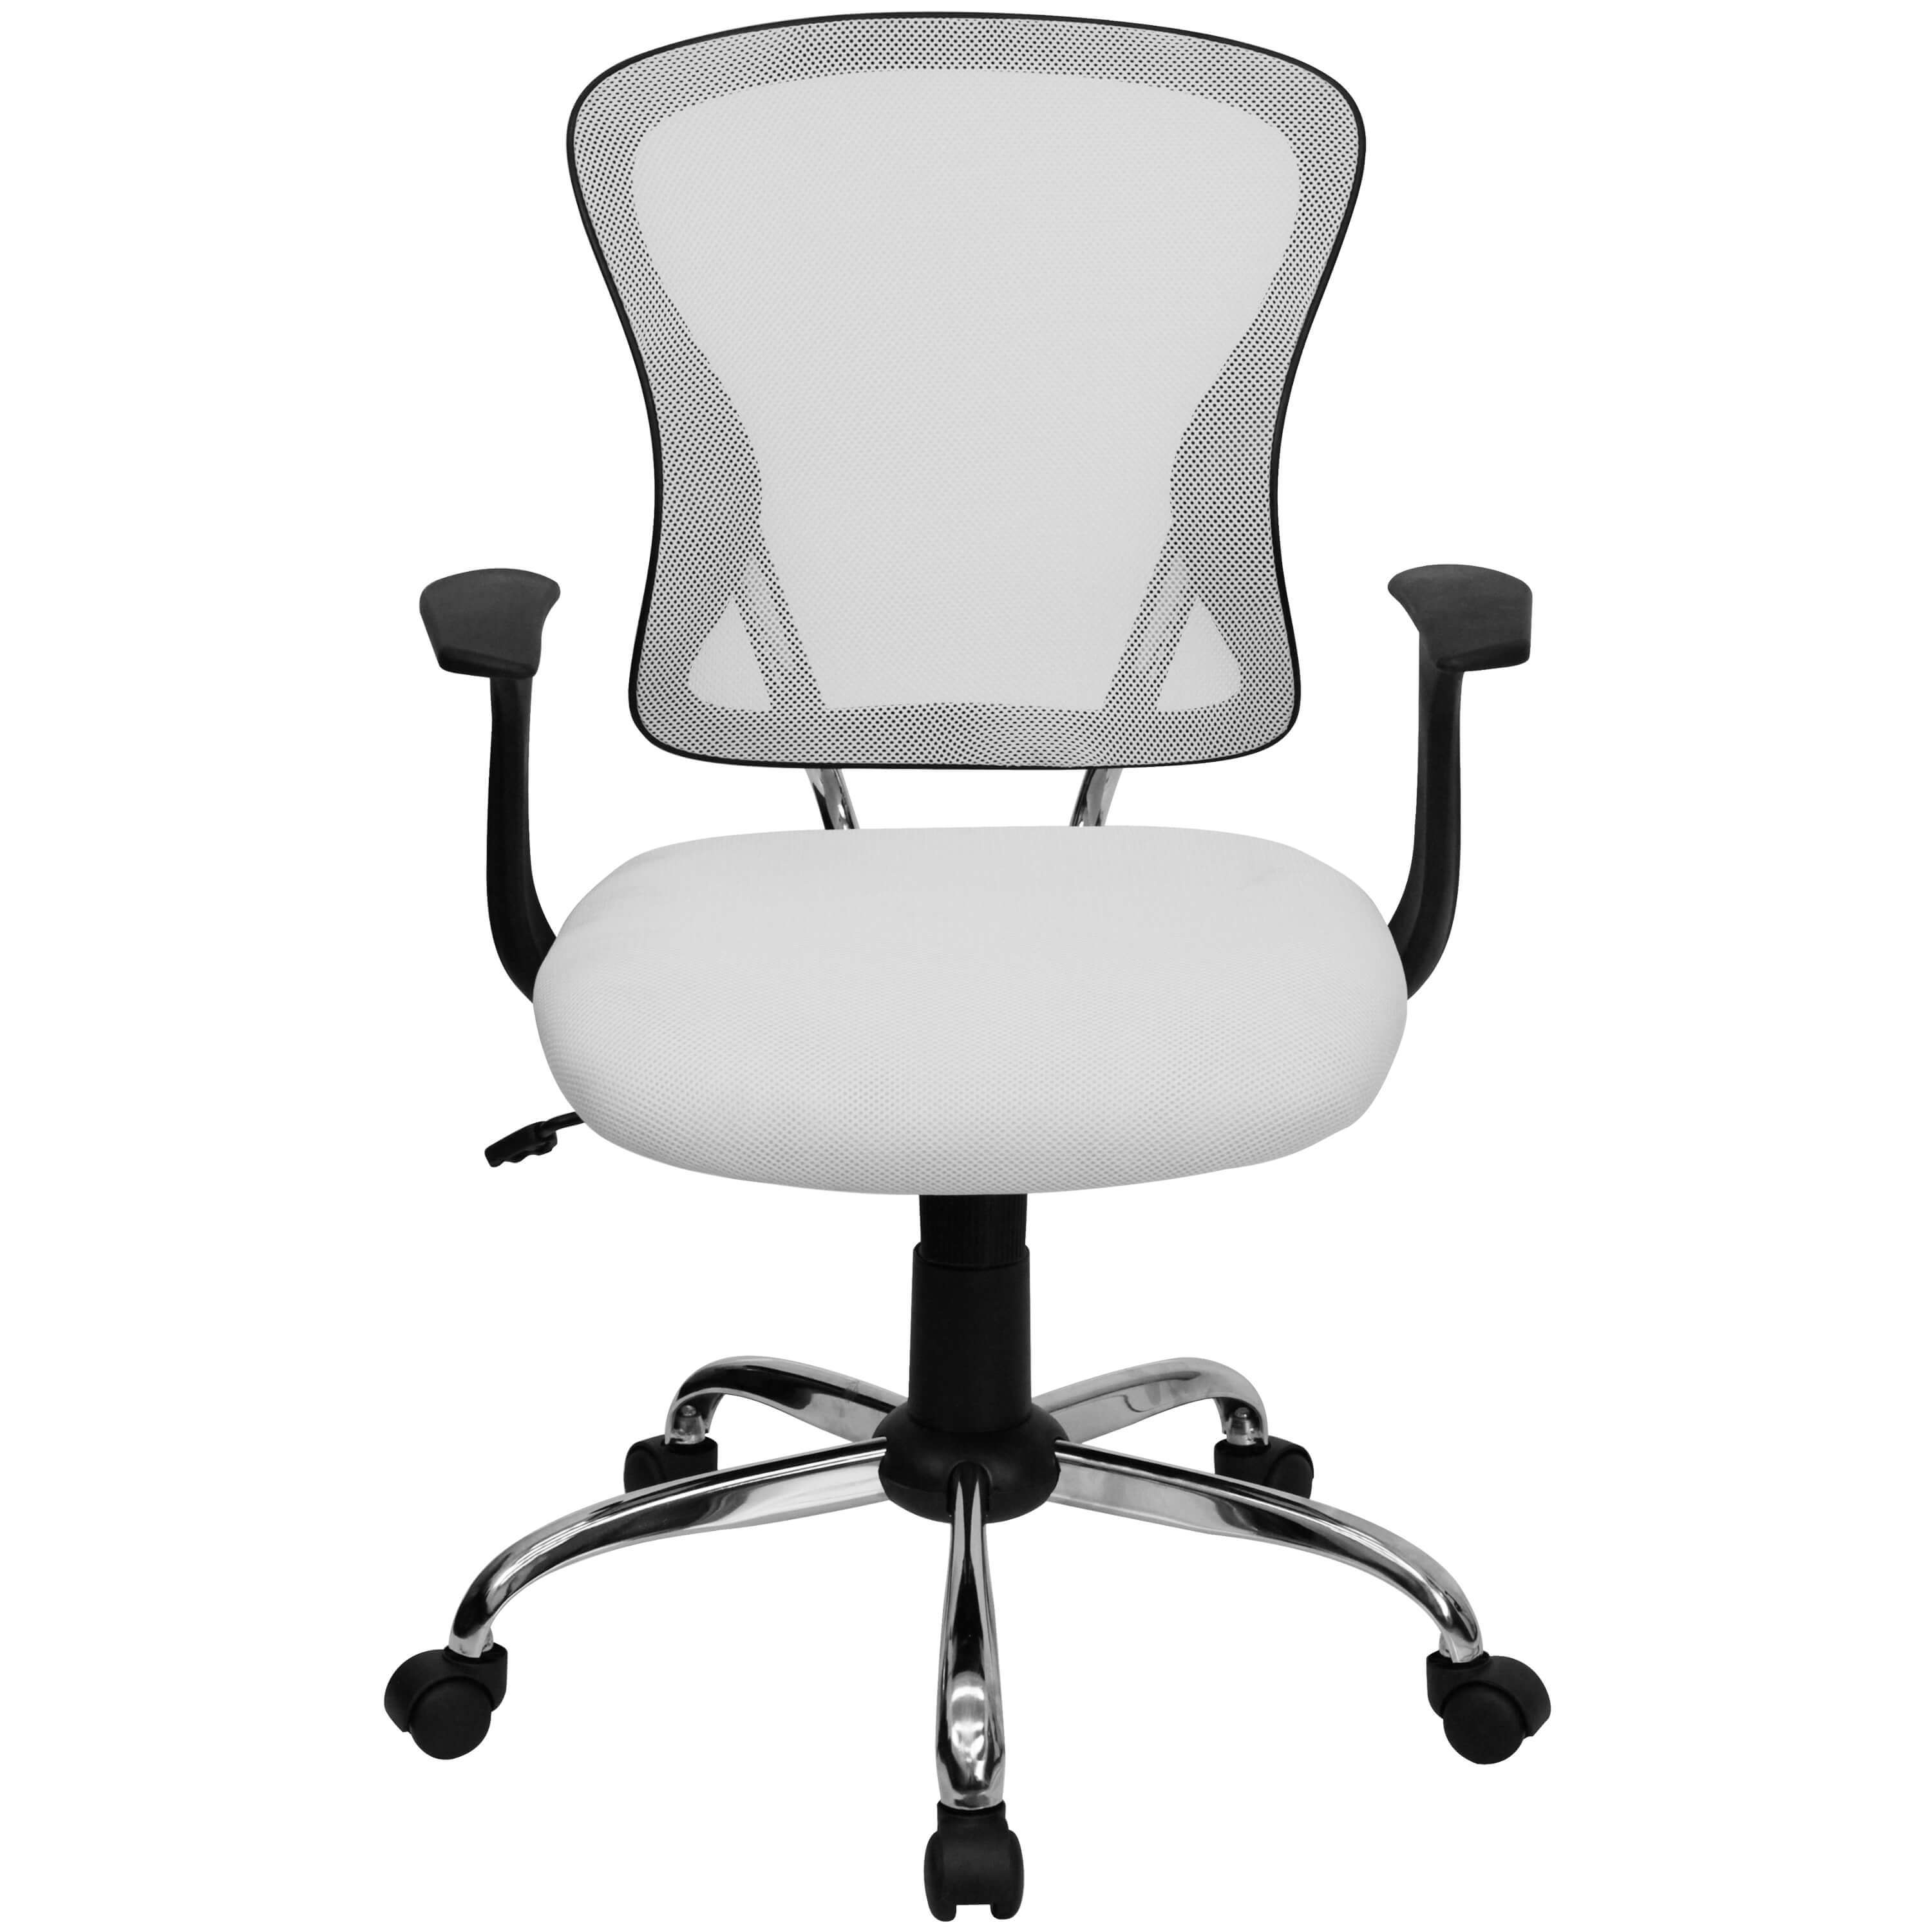 Colorful desk chairs CUB H 8369F WHT GG FLA